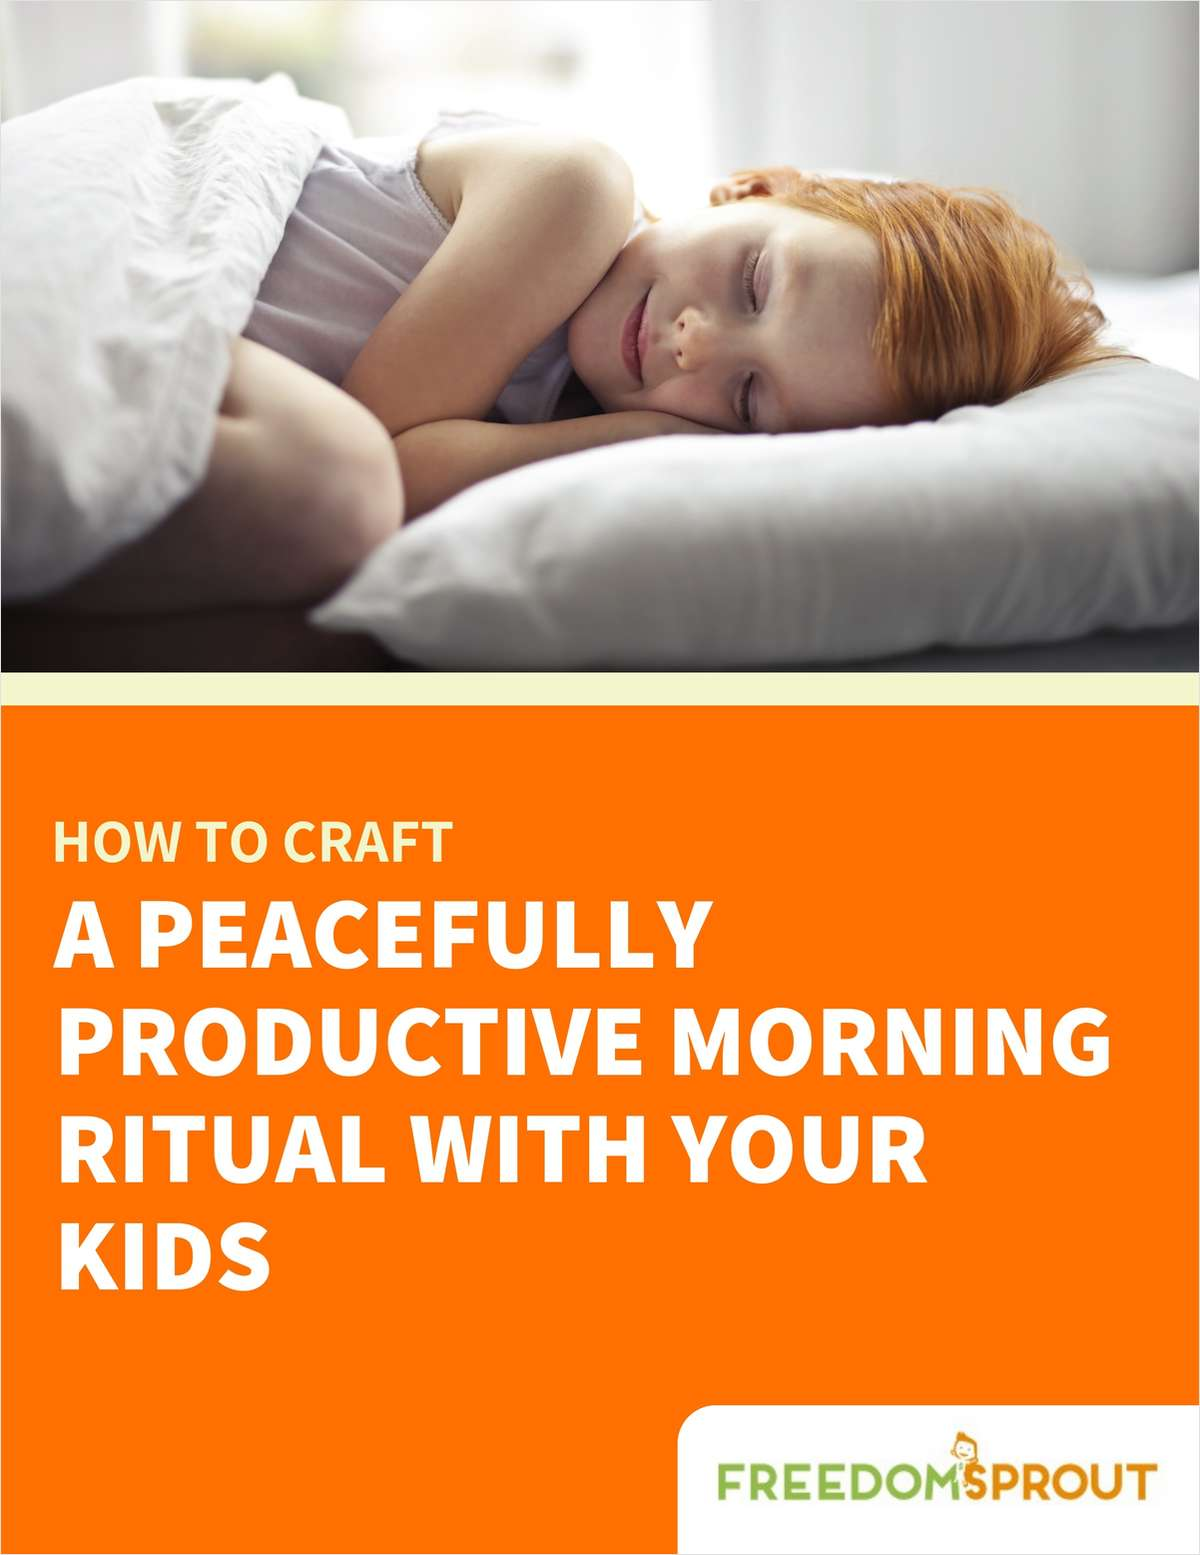 How to Craft a Peacefully Productive Morning Ritual With Your Kids